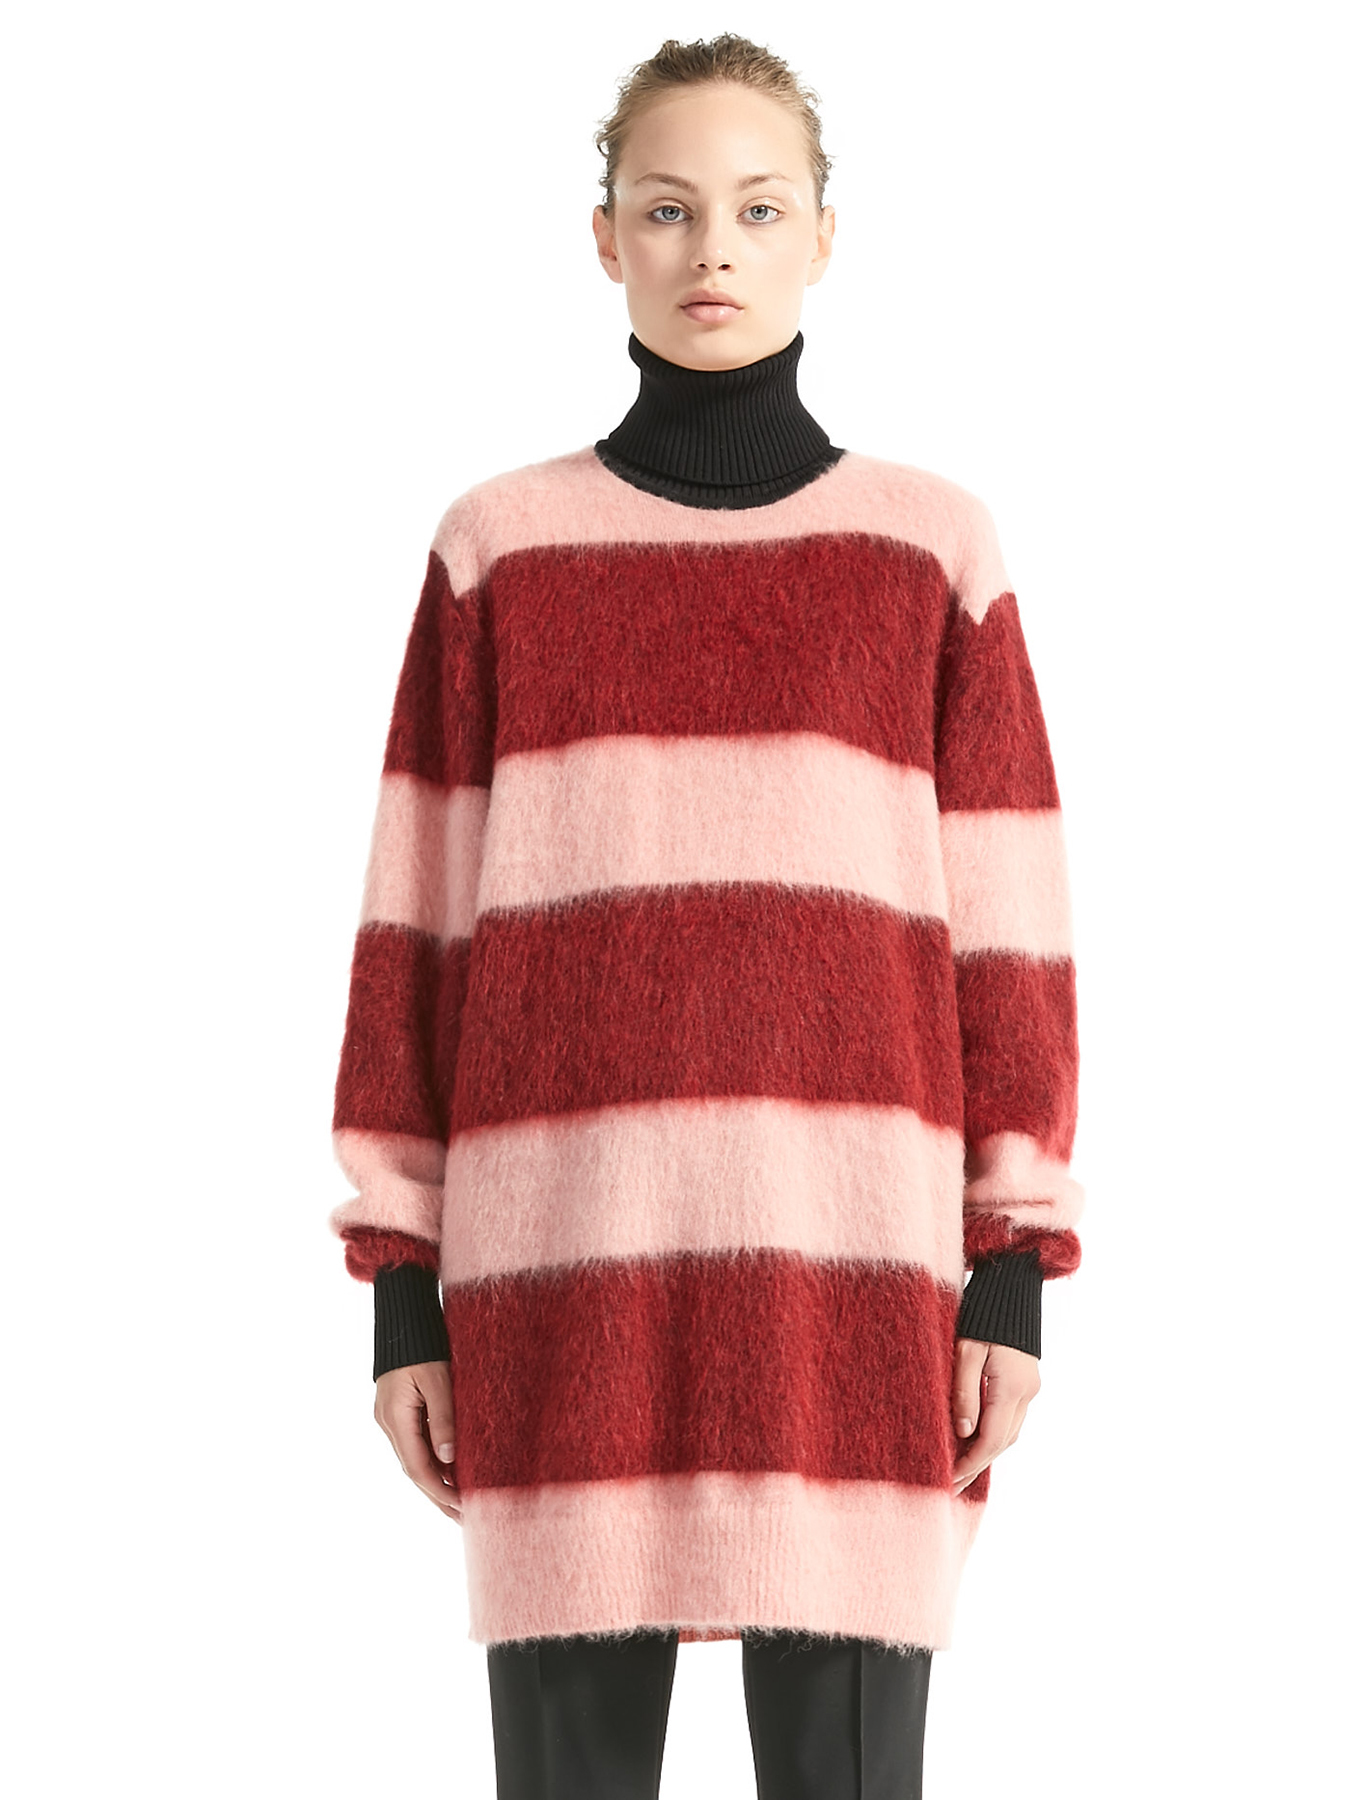 Maxi Stripe Mohair Sweater Dress, pink red - Sportmax